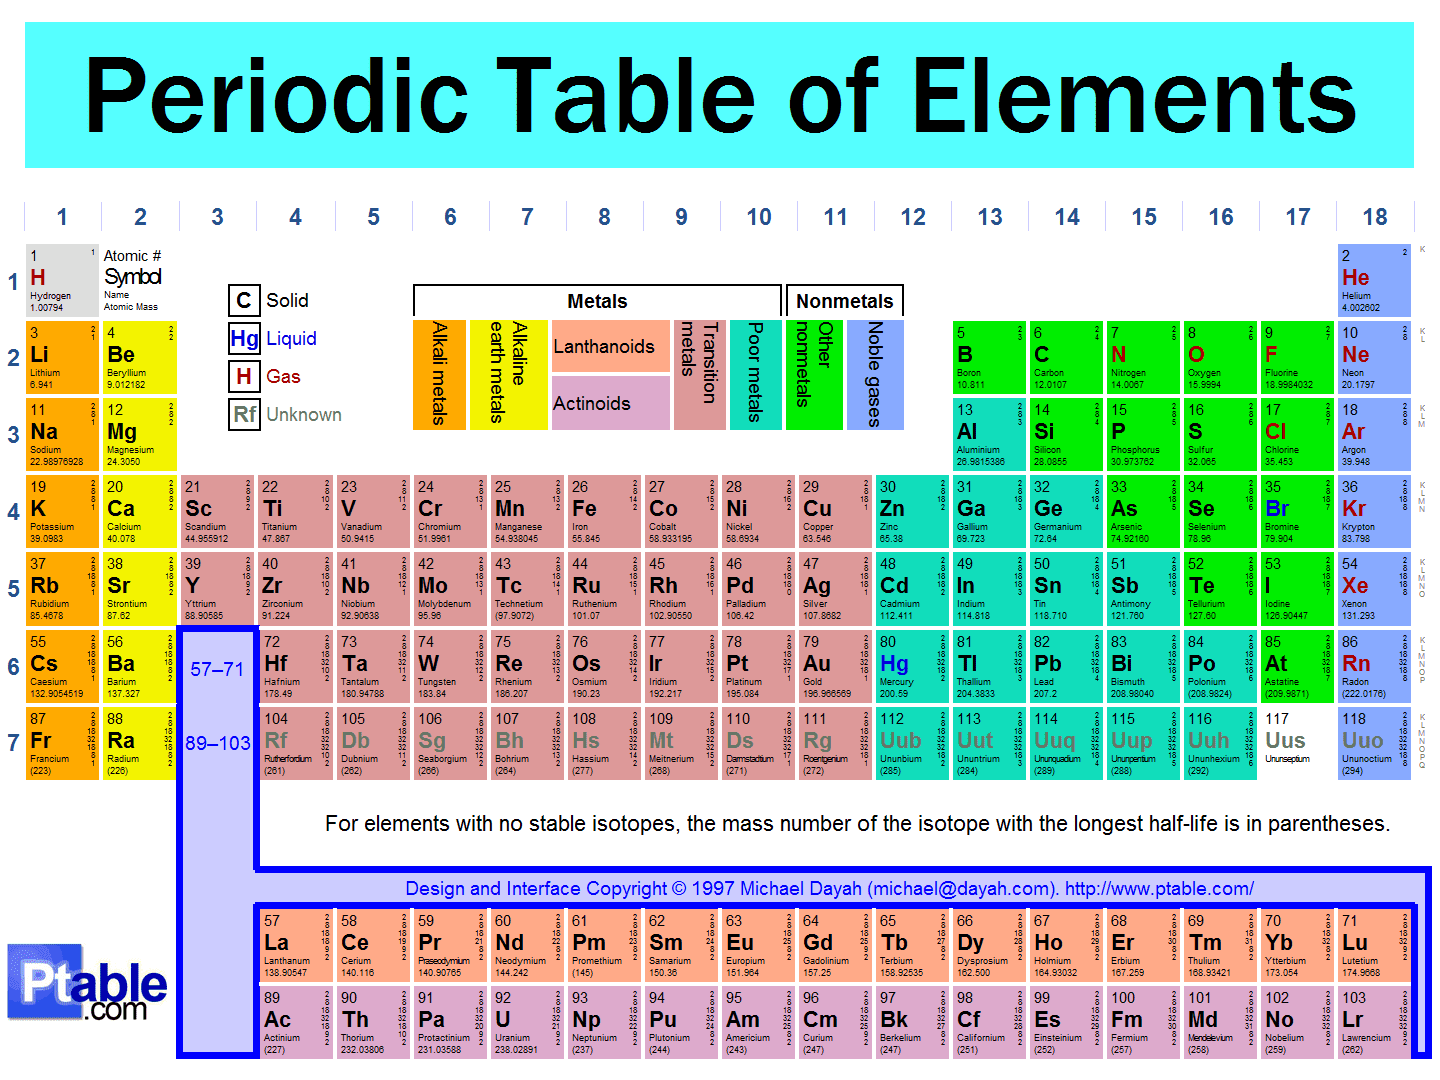 Get a free periodic table of elements poster this makes for a nice